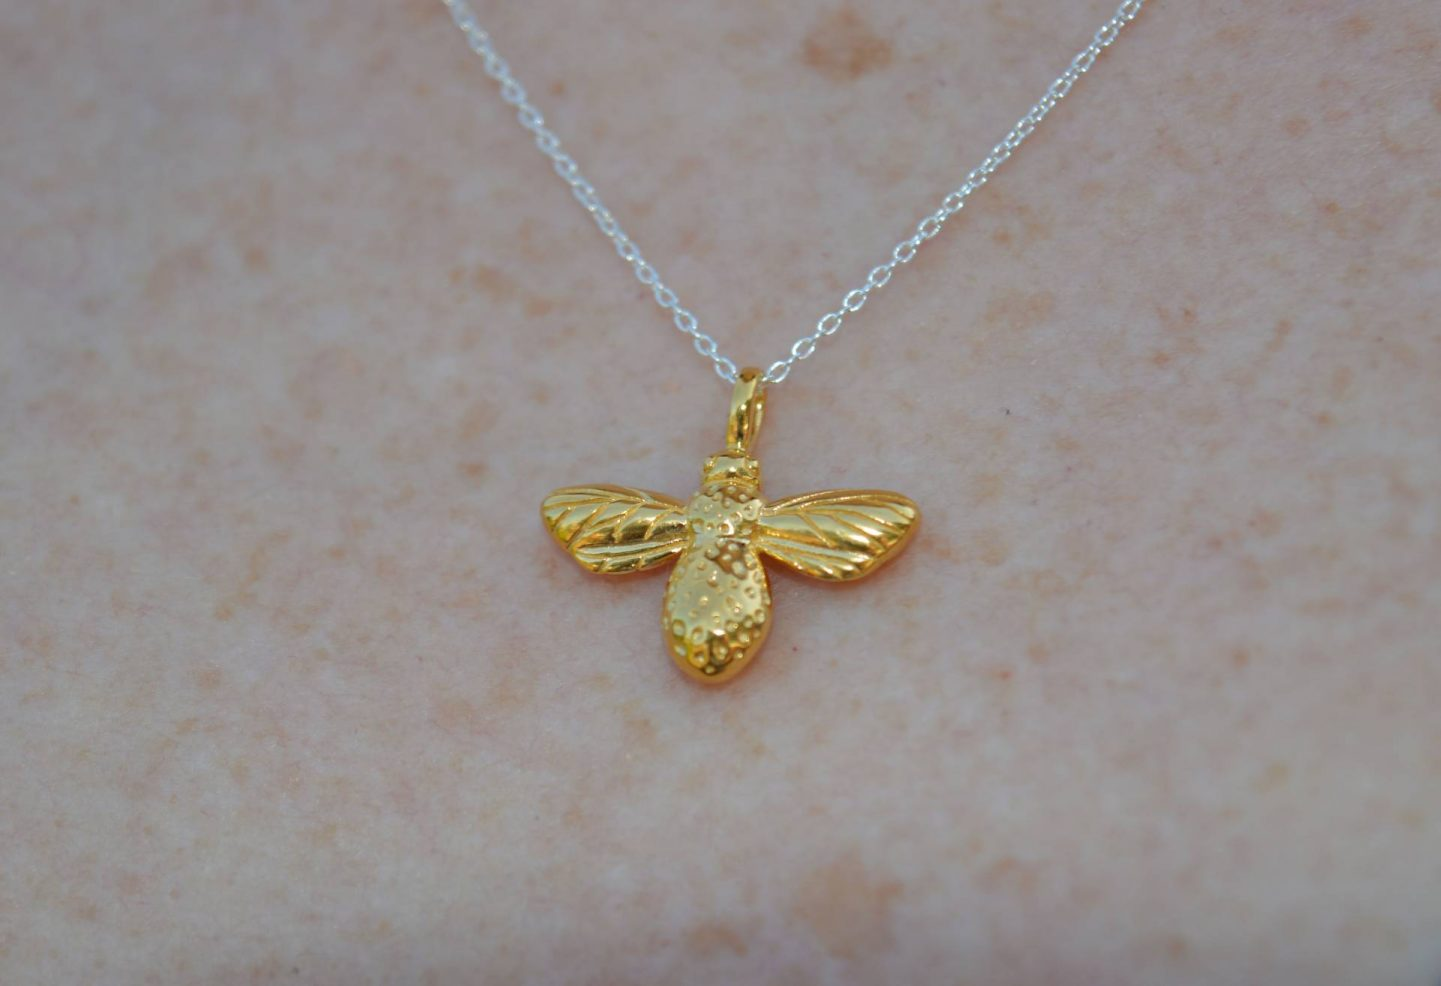 Reeves and Reeves bee necklace